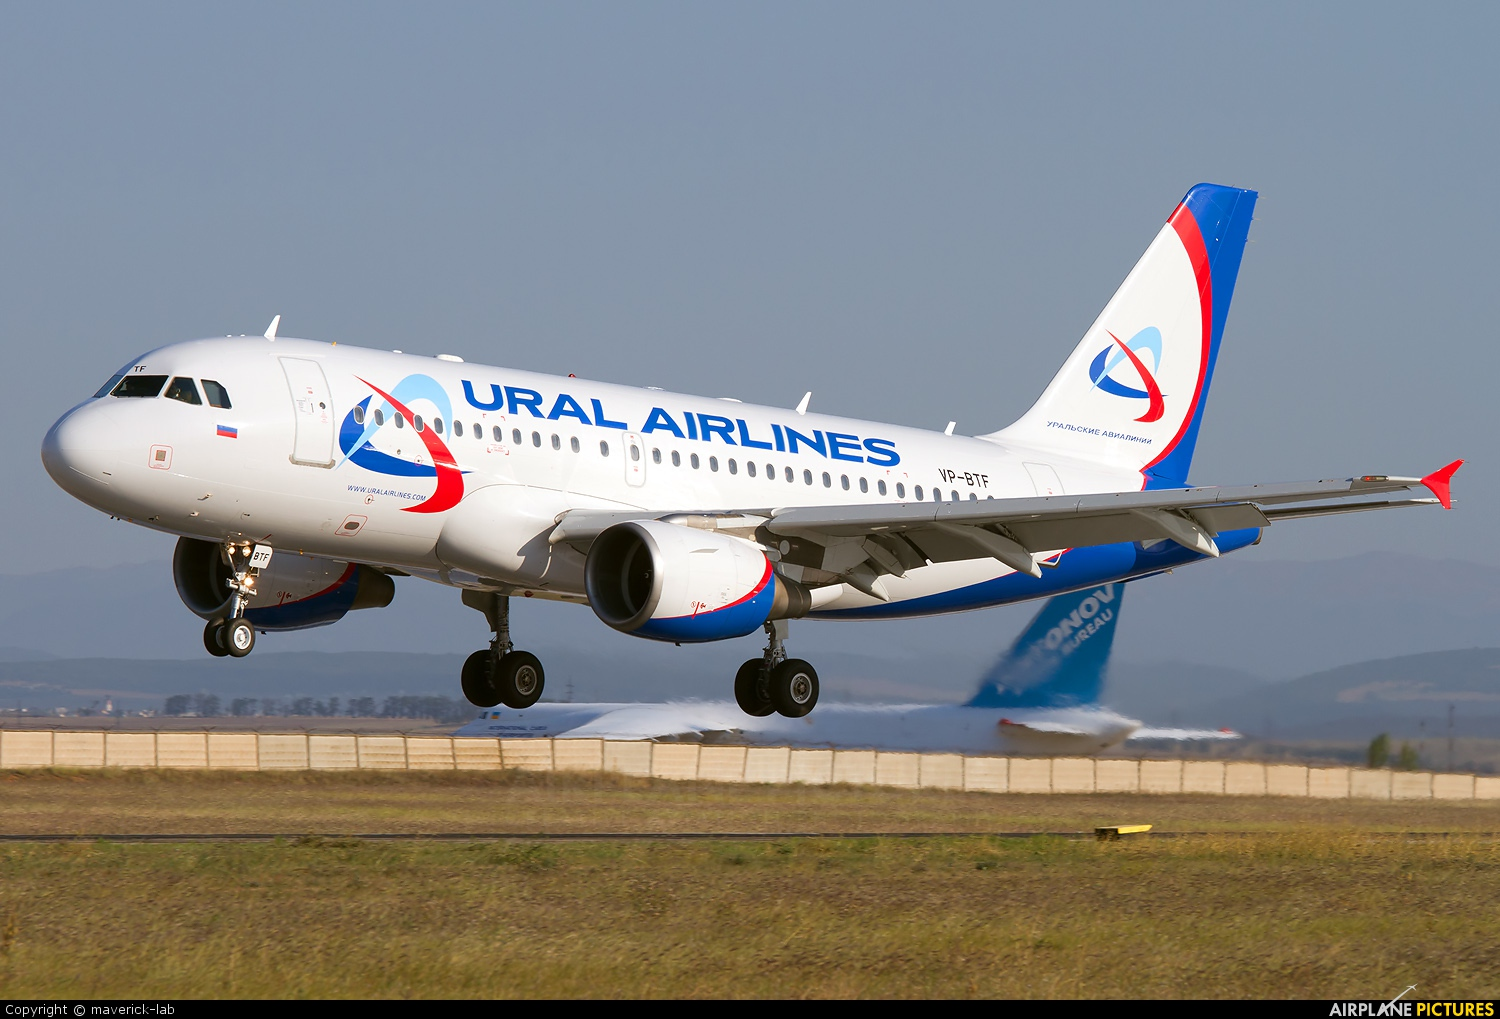 Ural Airlines VP-BTF aircraft at Simferopol International Airport (under Russian occupation)